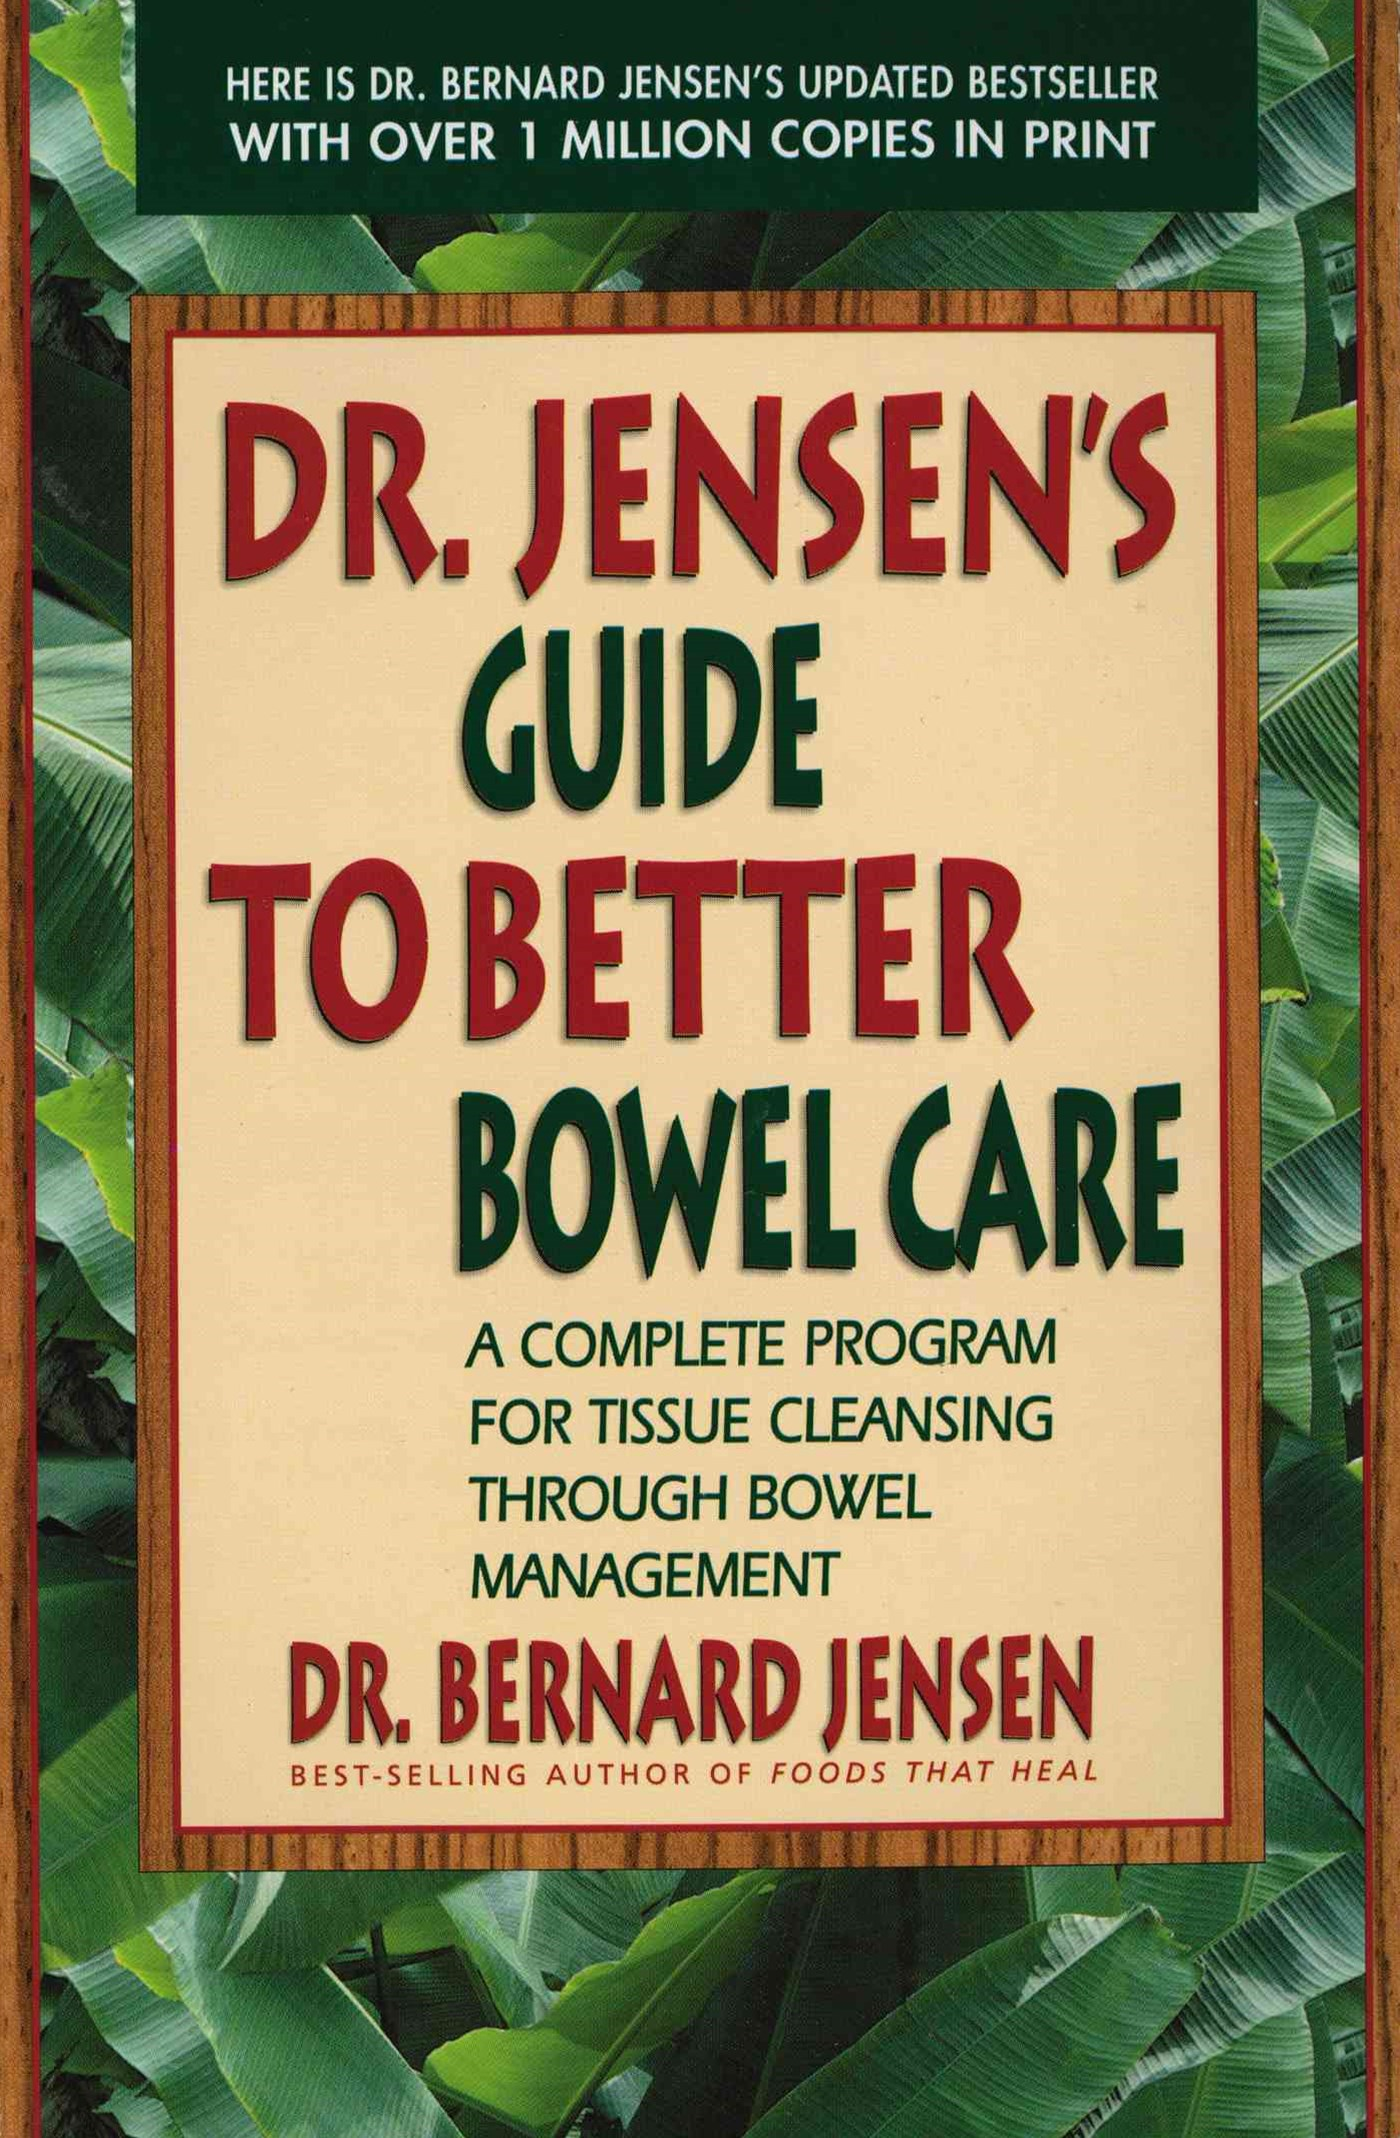 Dr Jensen's Guide To Better Bowel Care: A Complete Program For Tissue Cleansing Through Bowel Manag